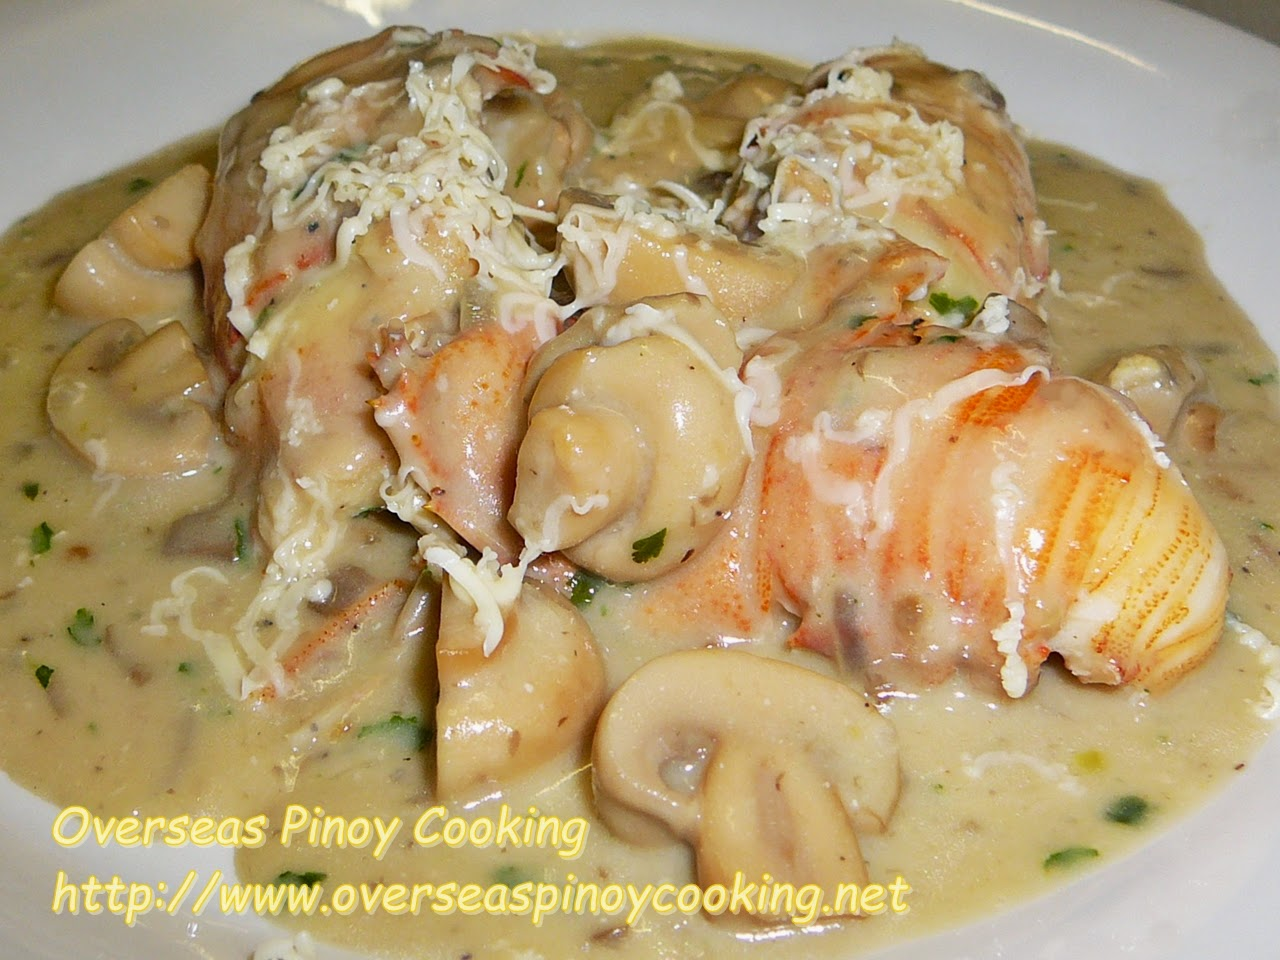 Slipper Lobster, Pitik with Cheesy Mushroom Sauce